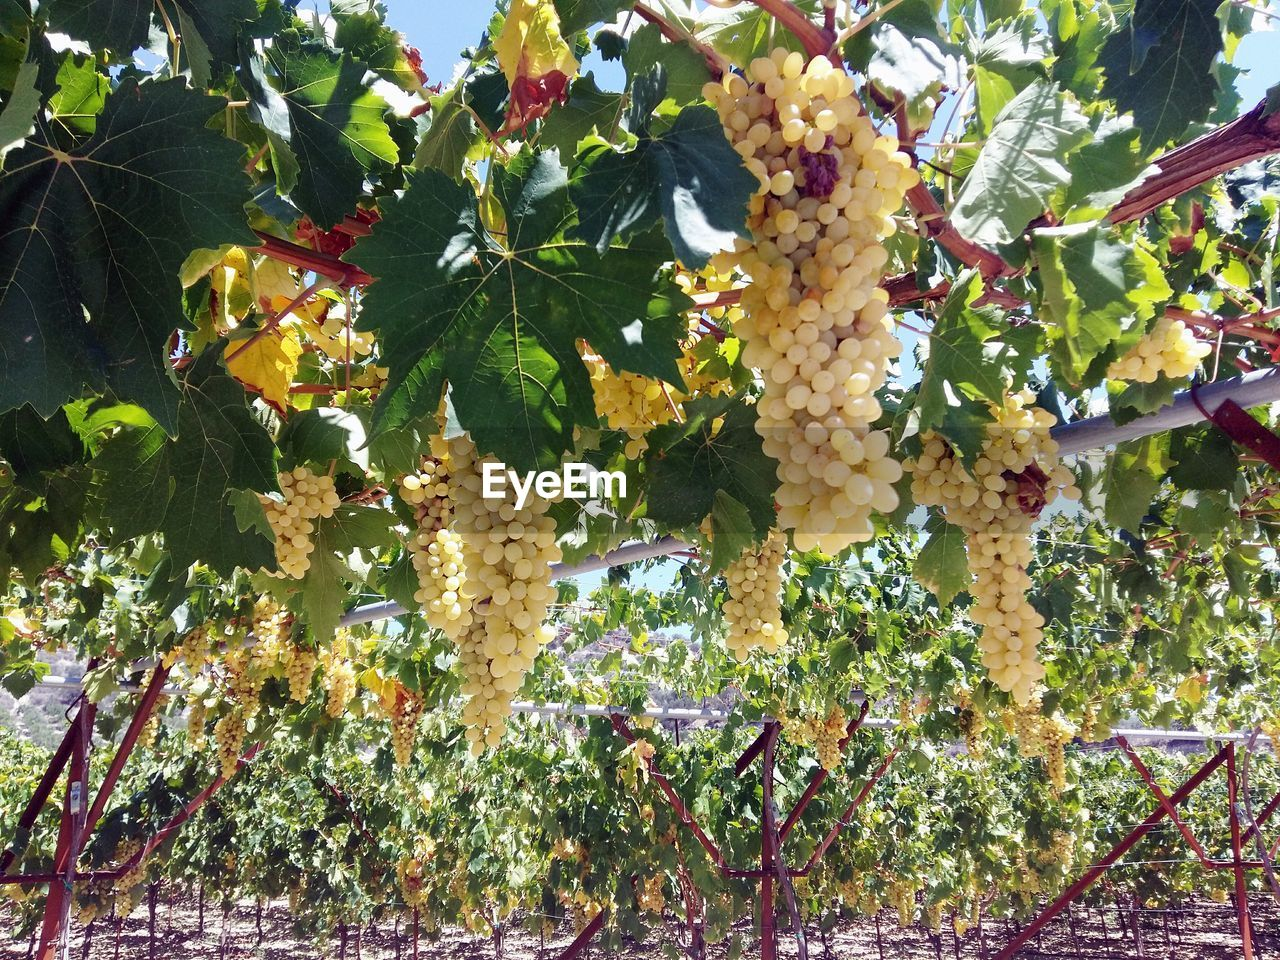 plant, growth, food and drink, tree, leaf, healthy eating, plant part, no people, food, freshness, nature, day, beauty in nature, fruit, green color, close-up, flowering plant, hanging, outdoors, flower, ripe